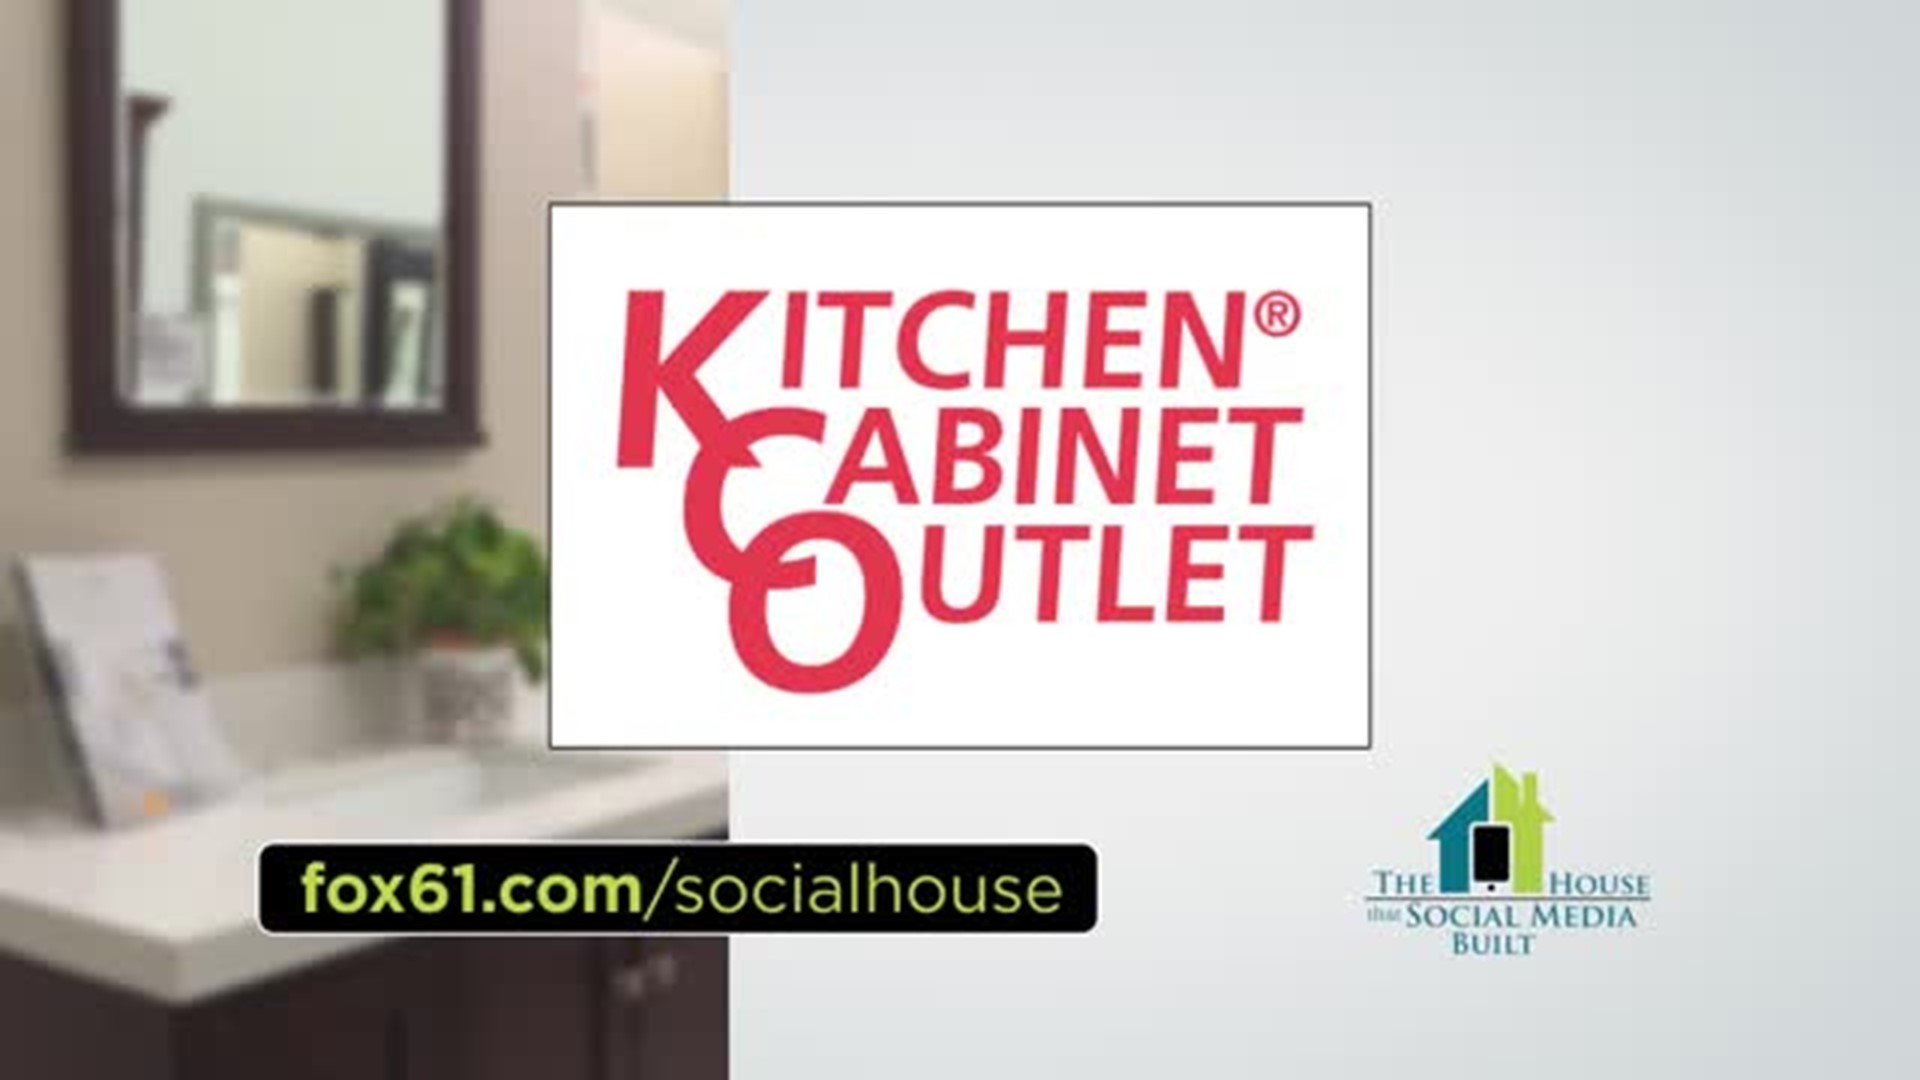 The House That Social Media Built Vote On The Kitchen Cabinet Design From Kitchen Cabinet Outlet Fox61 Com